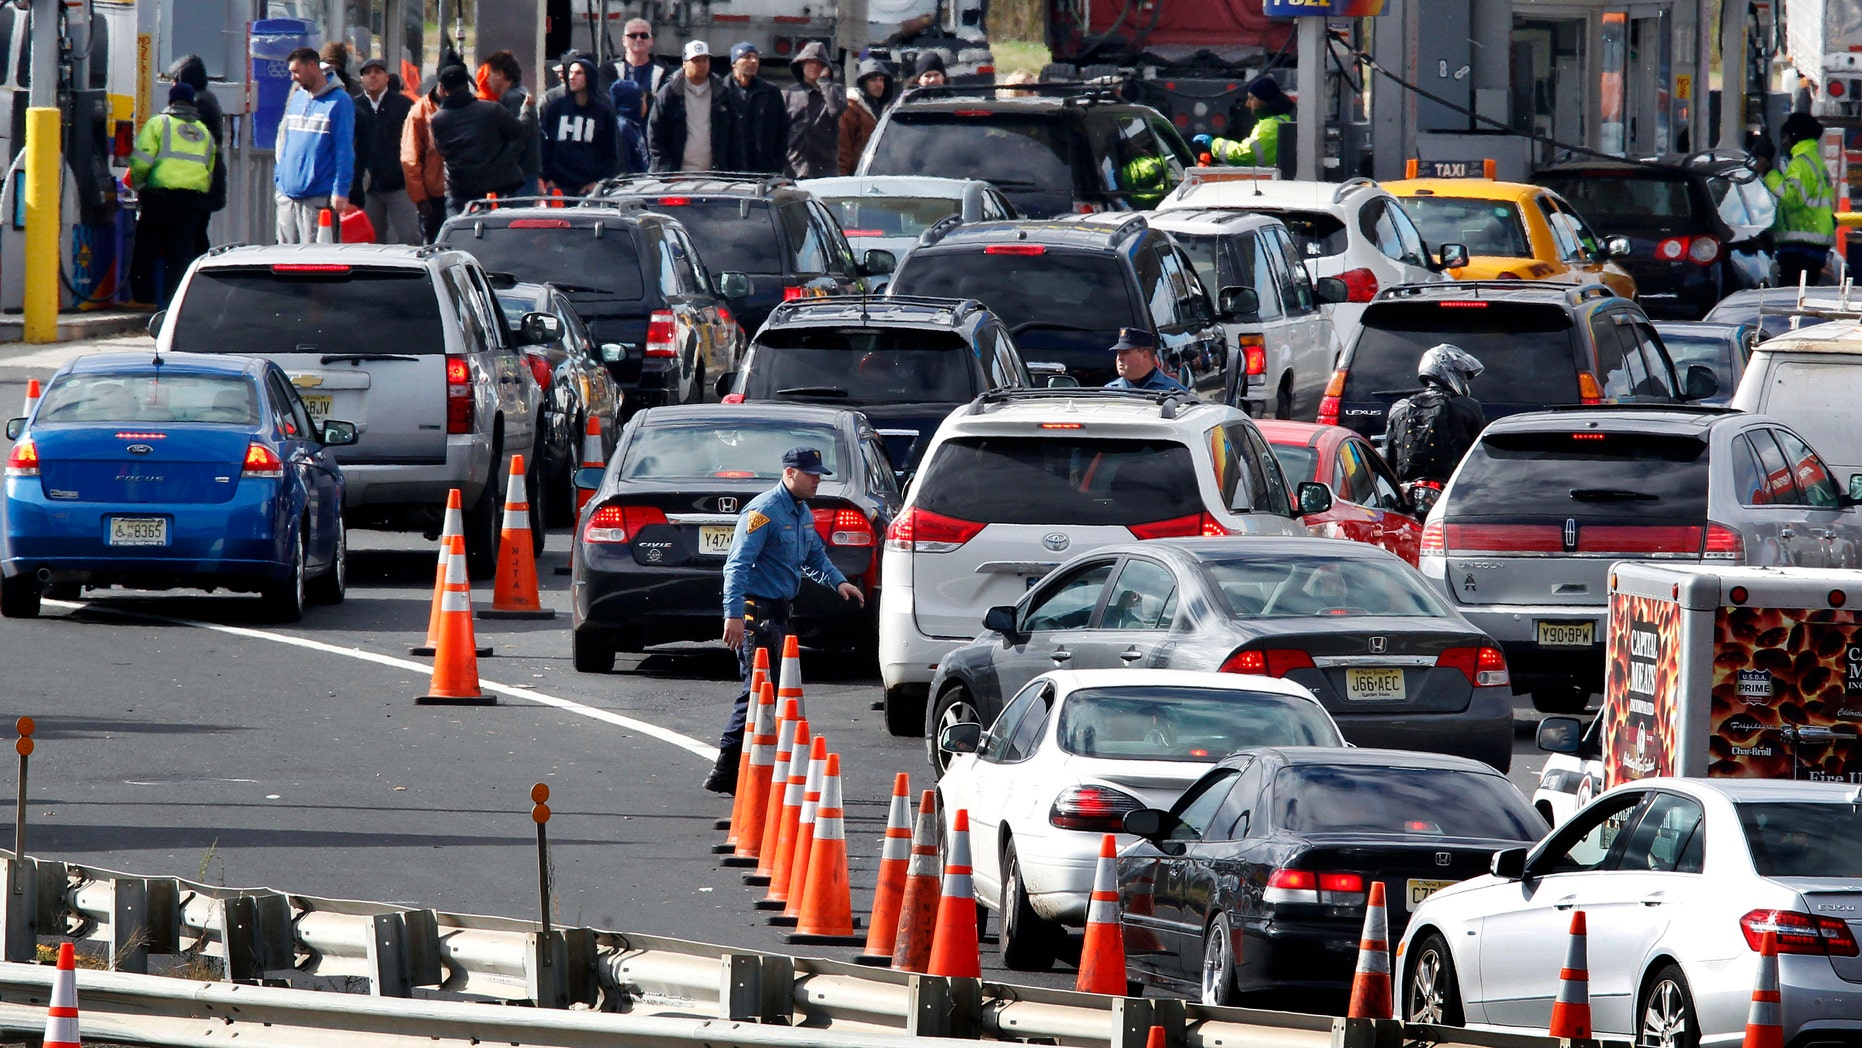 New Jersey state troopers keep order as motorists line up to purchase gasoline at the Thomas A. Edison service area on the New Jersey Turnpike, Saturday, Nov. 3, 2012, near Woodbridge, N.J. (AP Photo/Mel Evans)